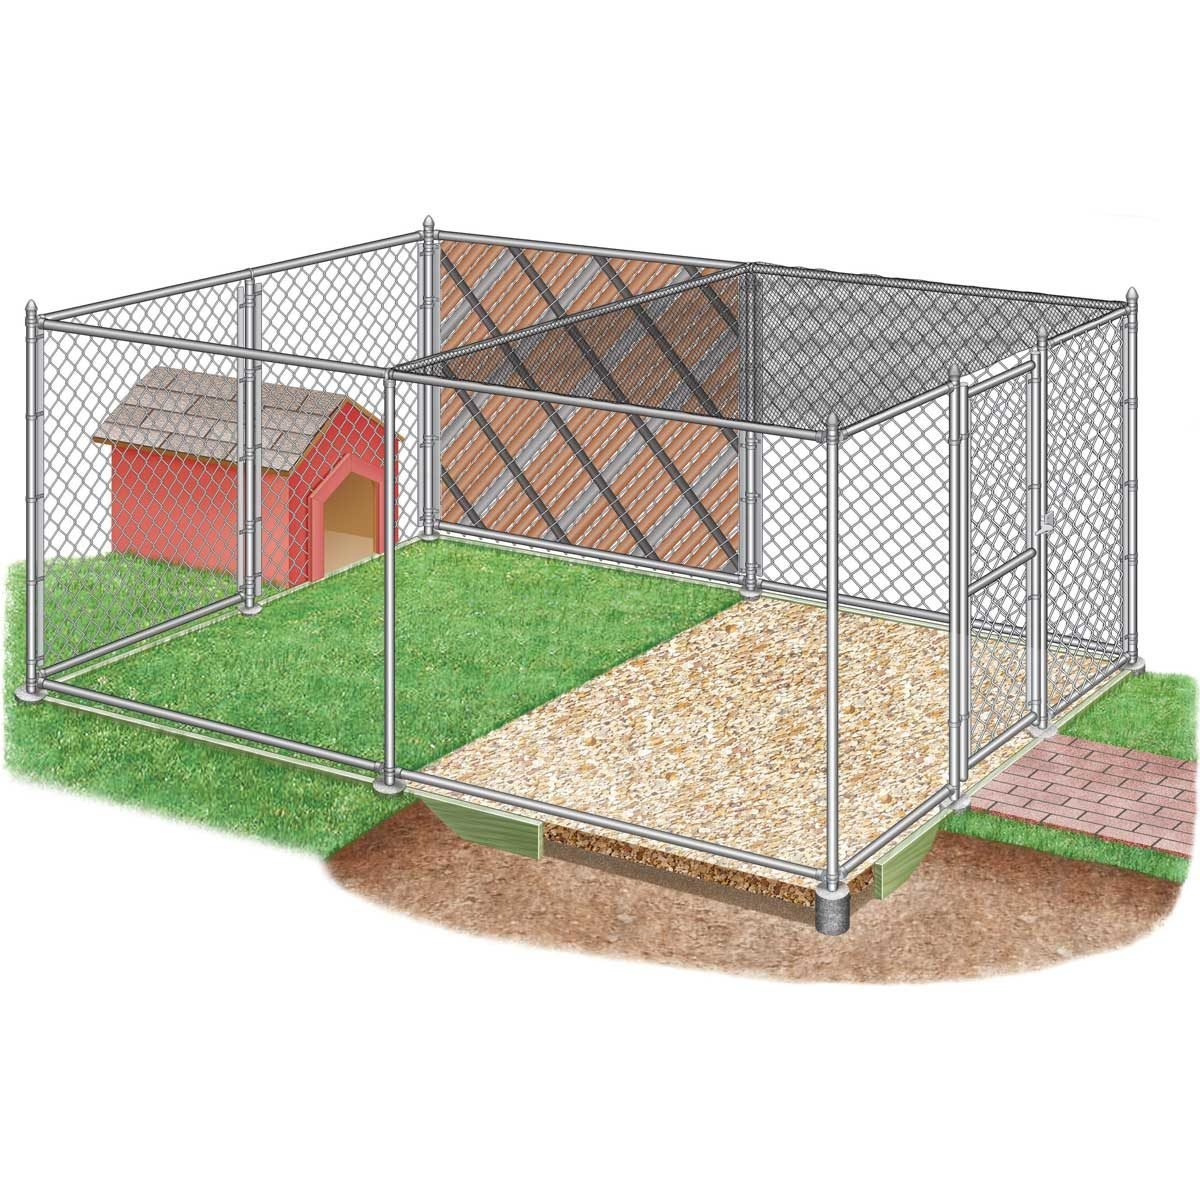 How to Build Chain Link Outdoor Dog Kennels | The Family ...